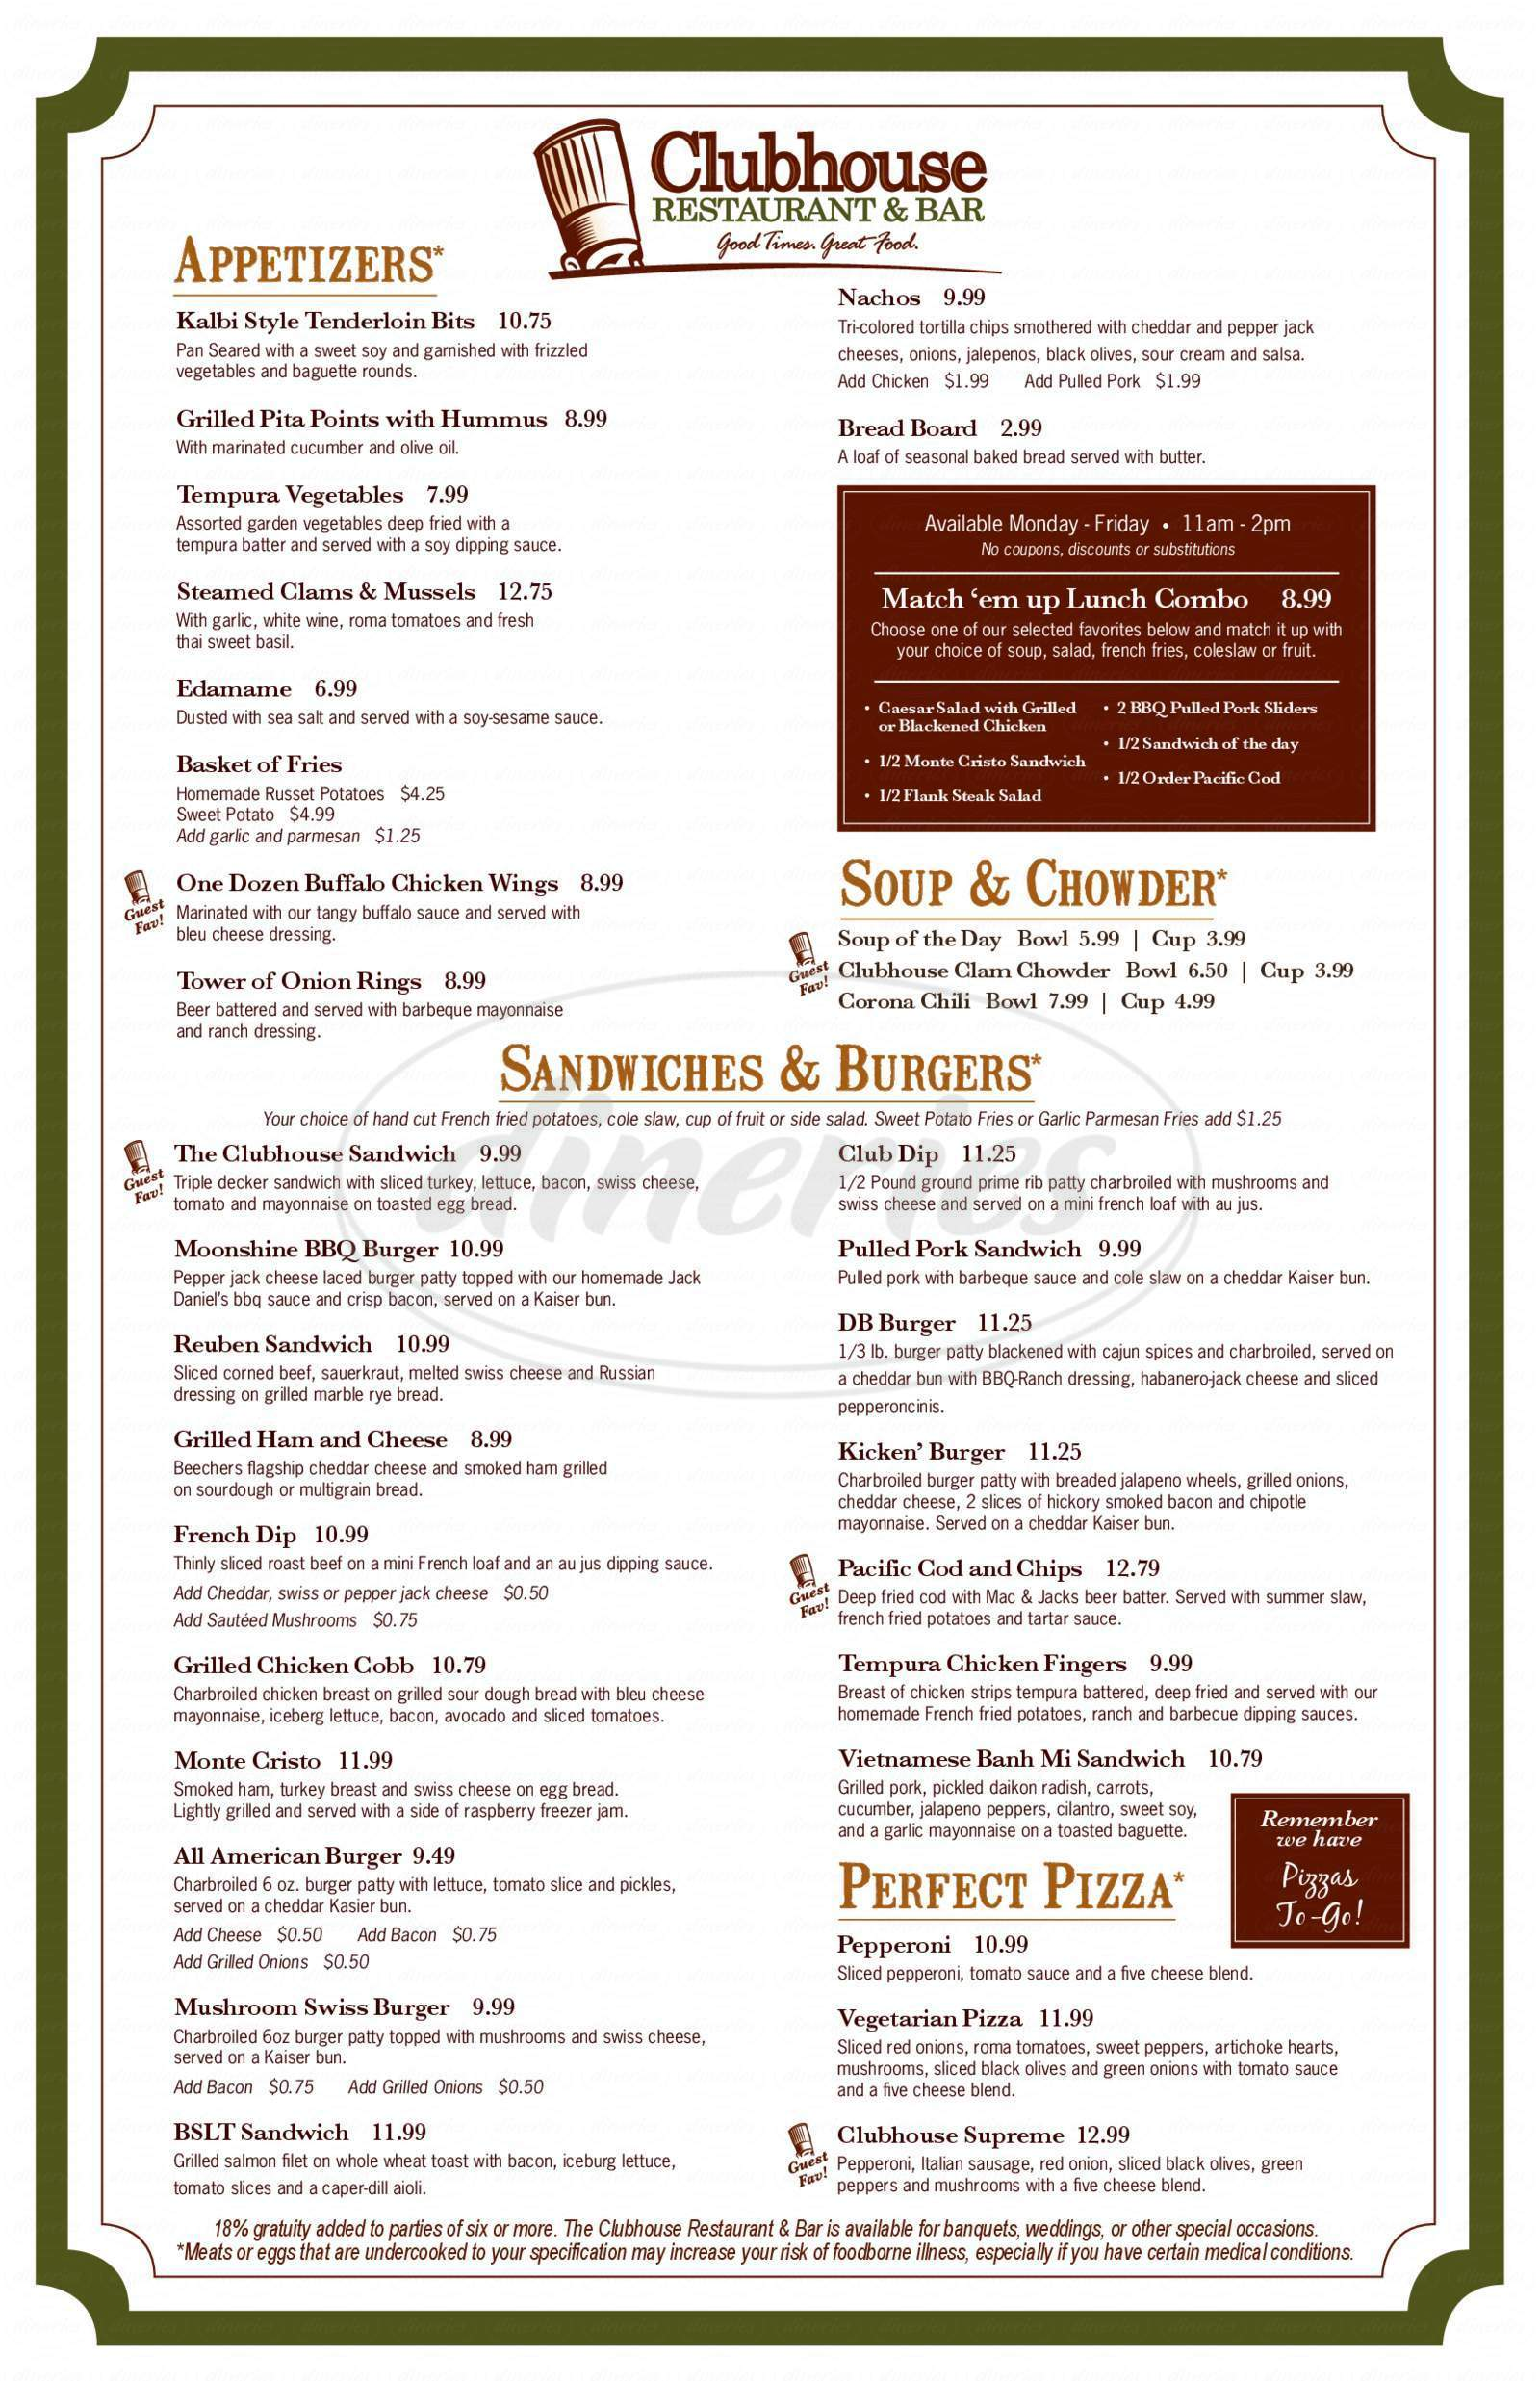 menu for Clubhouse Restaurant